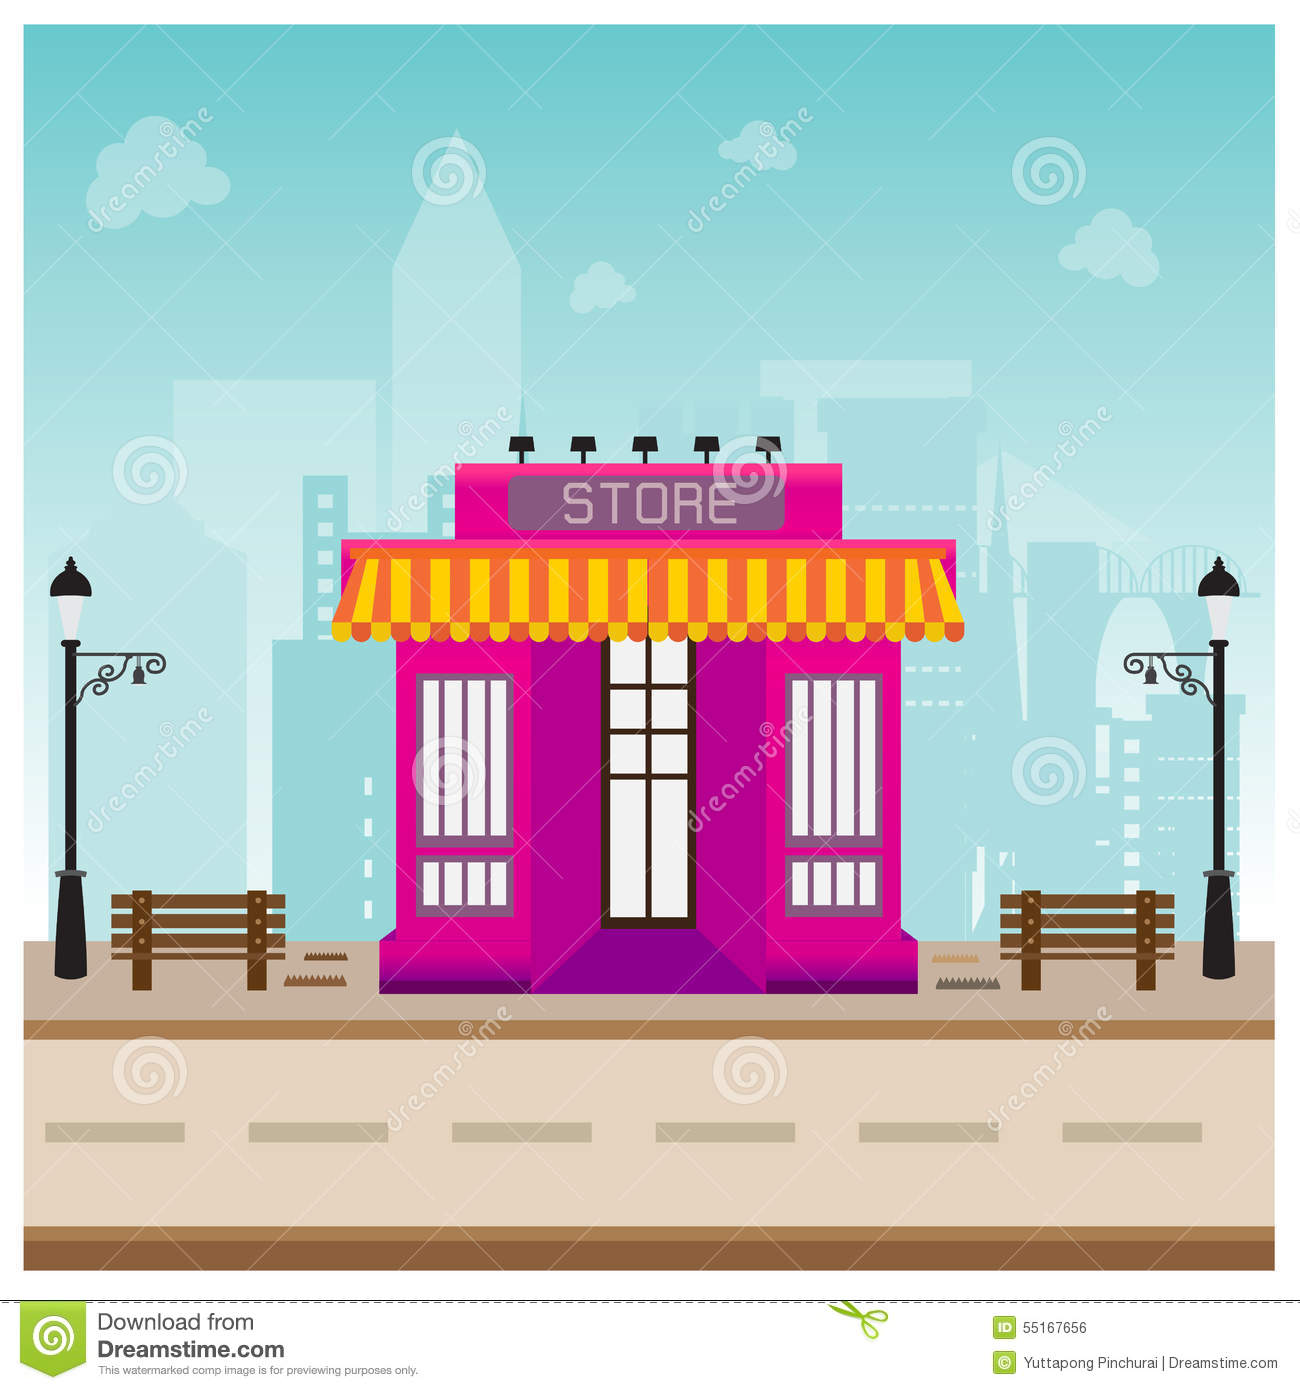 Store building in city space with road blue background for Store building design